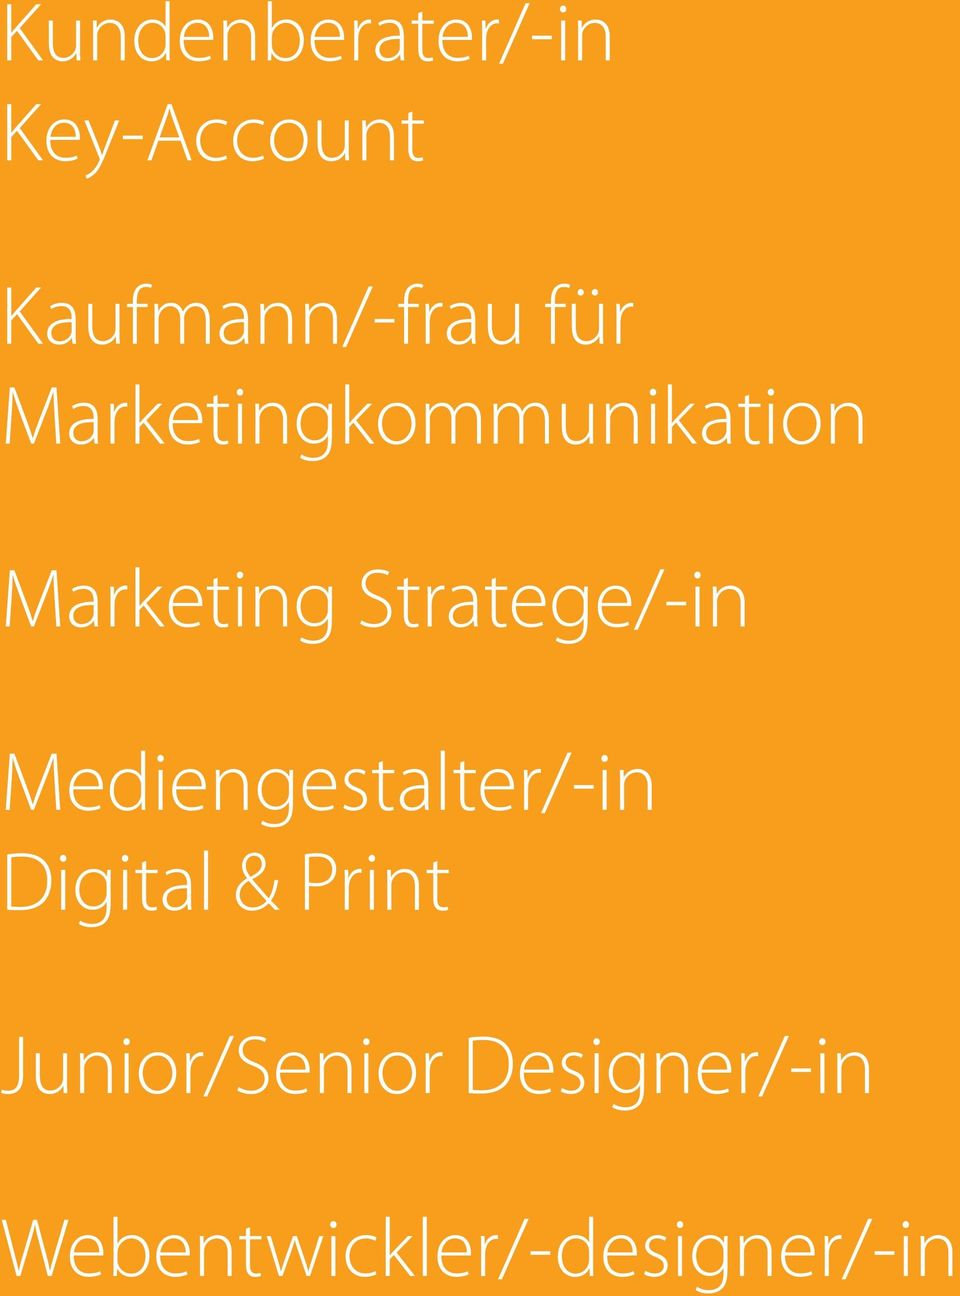 Stratege/-in Mediengestalter/-in Digital &